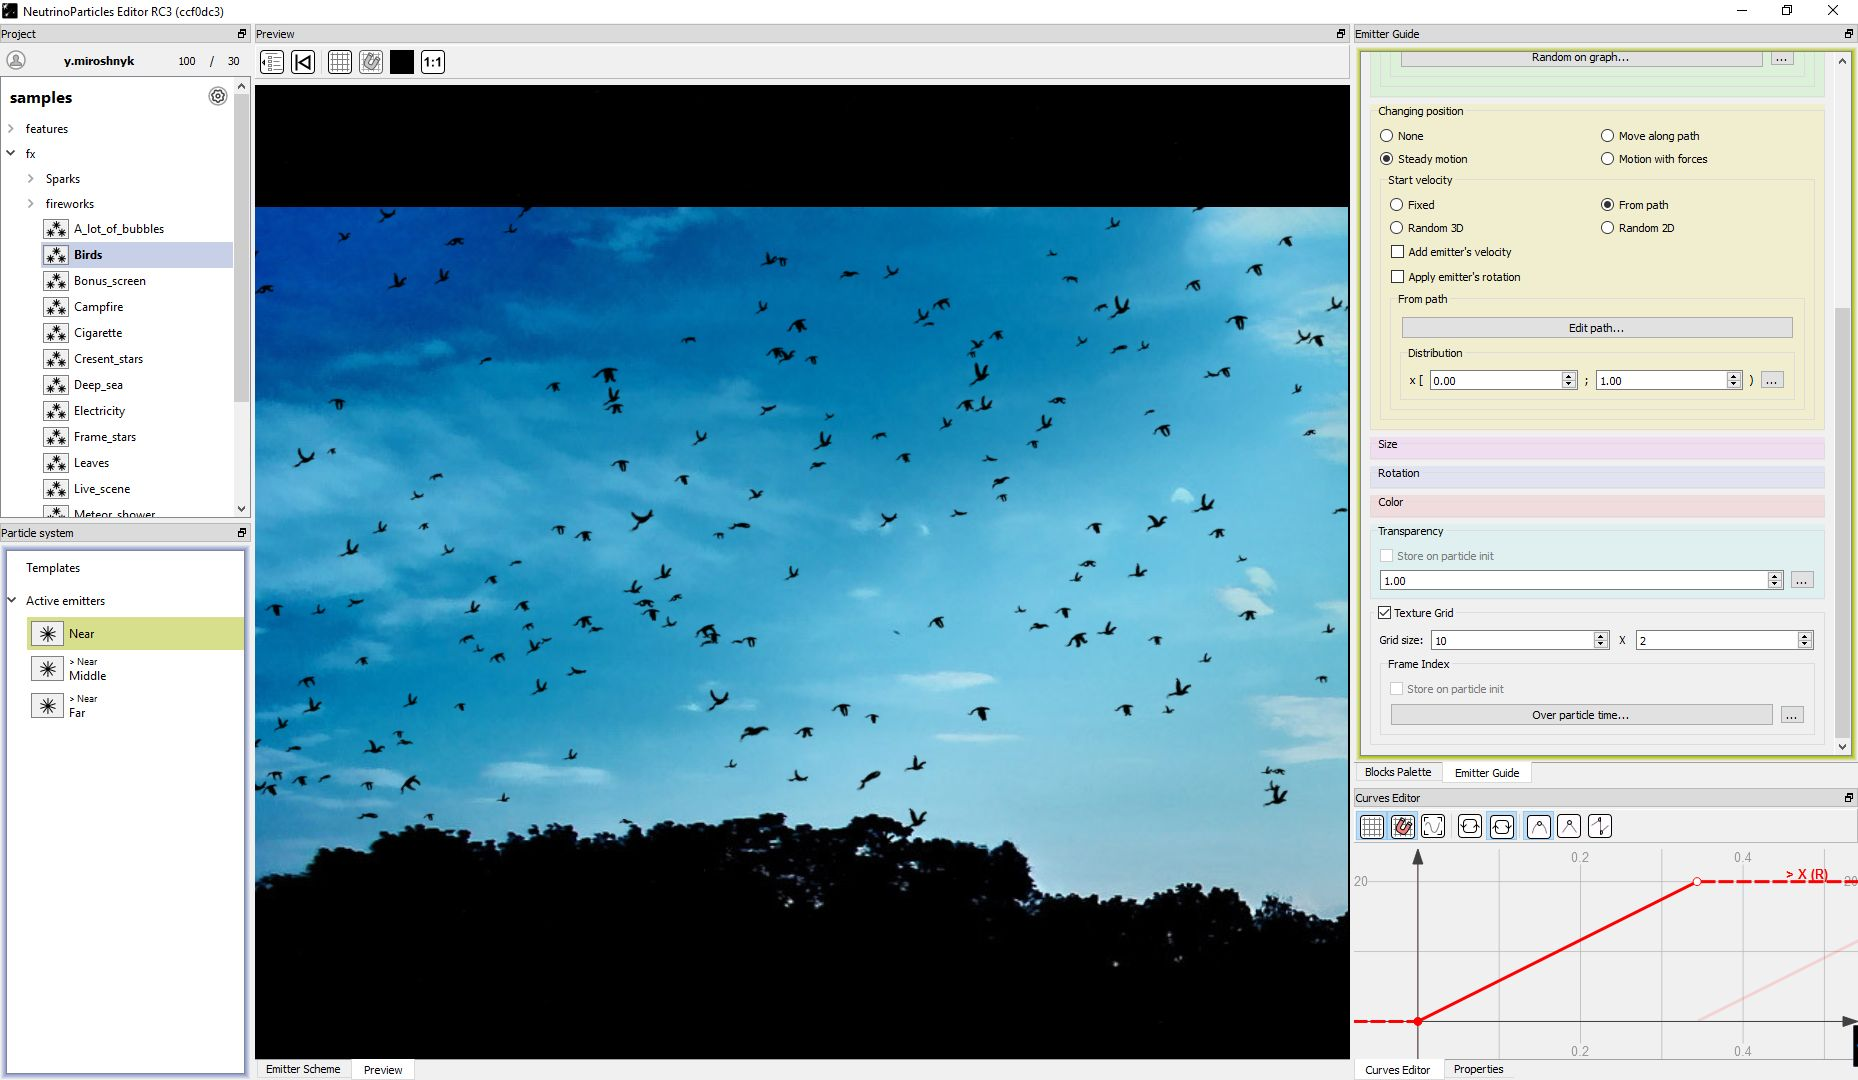 NeutrinoParticles - the best particle effects editor for